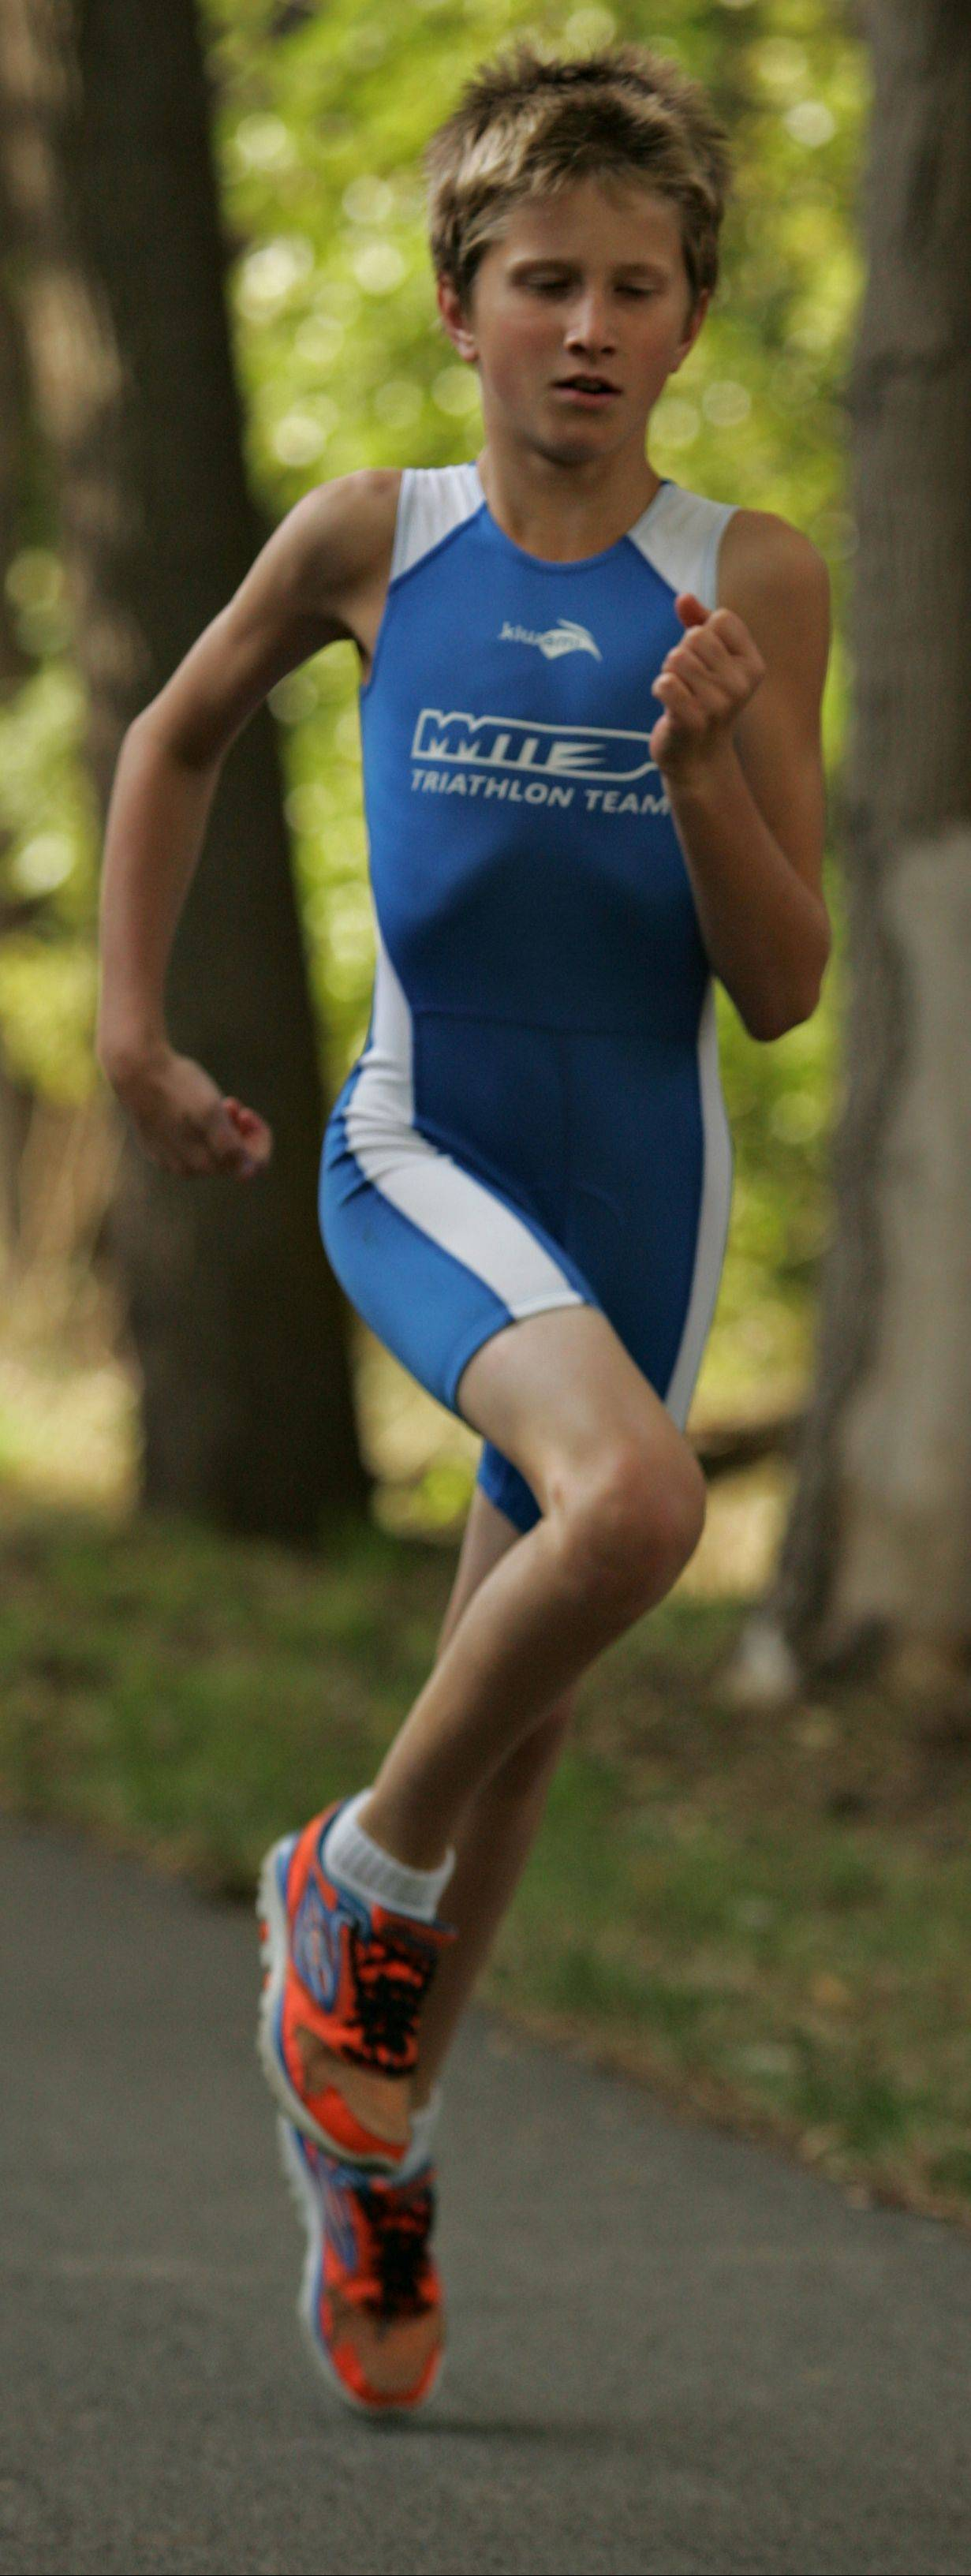 Of the three disciplines involved in a triathlon, Justin says running is his favorite.